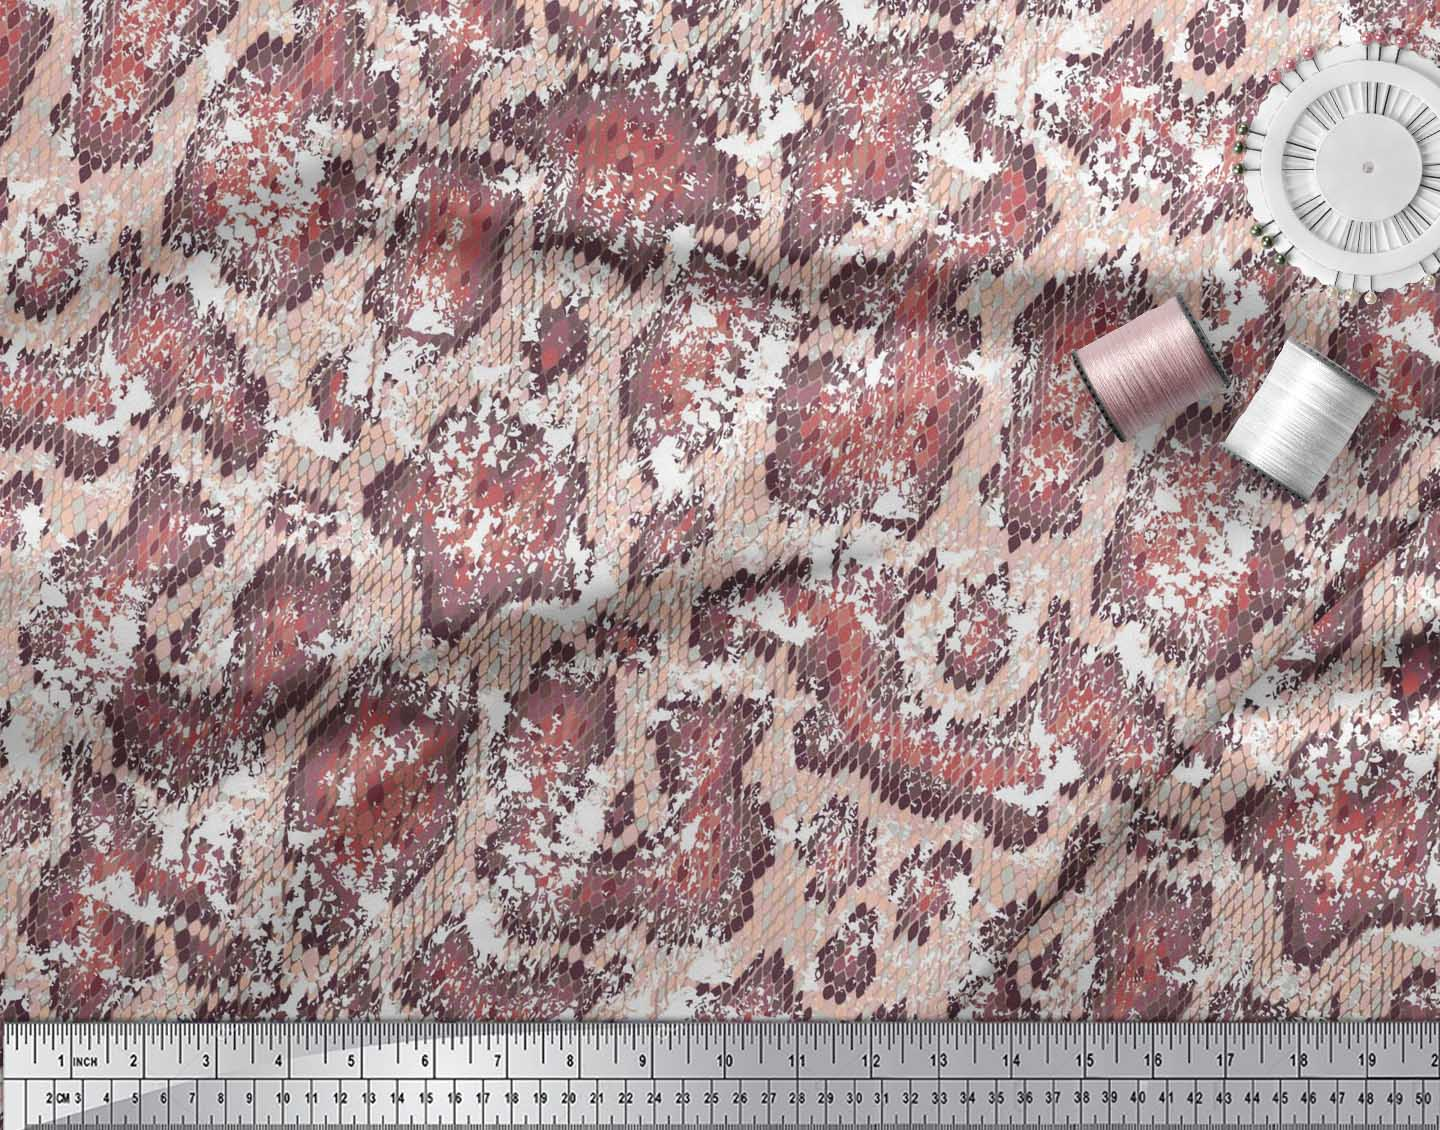 Soimoi-Cotton-Poplin-Fabric-Snake-Animal-Skin-Fabric-Prints-By-metre-rGy thumbnail 4